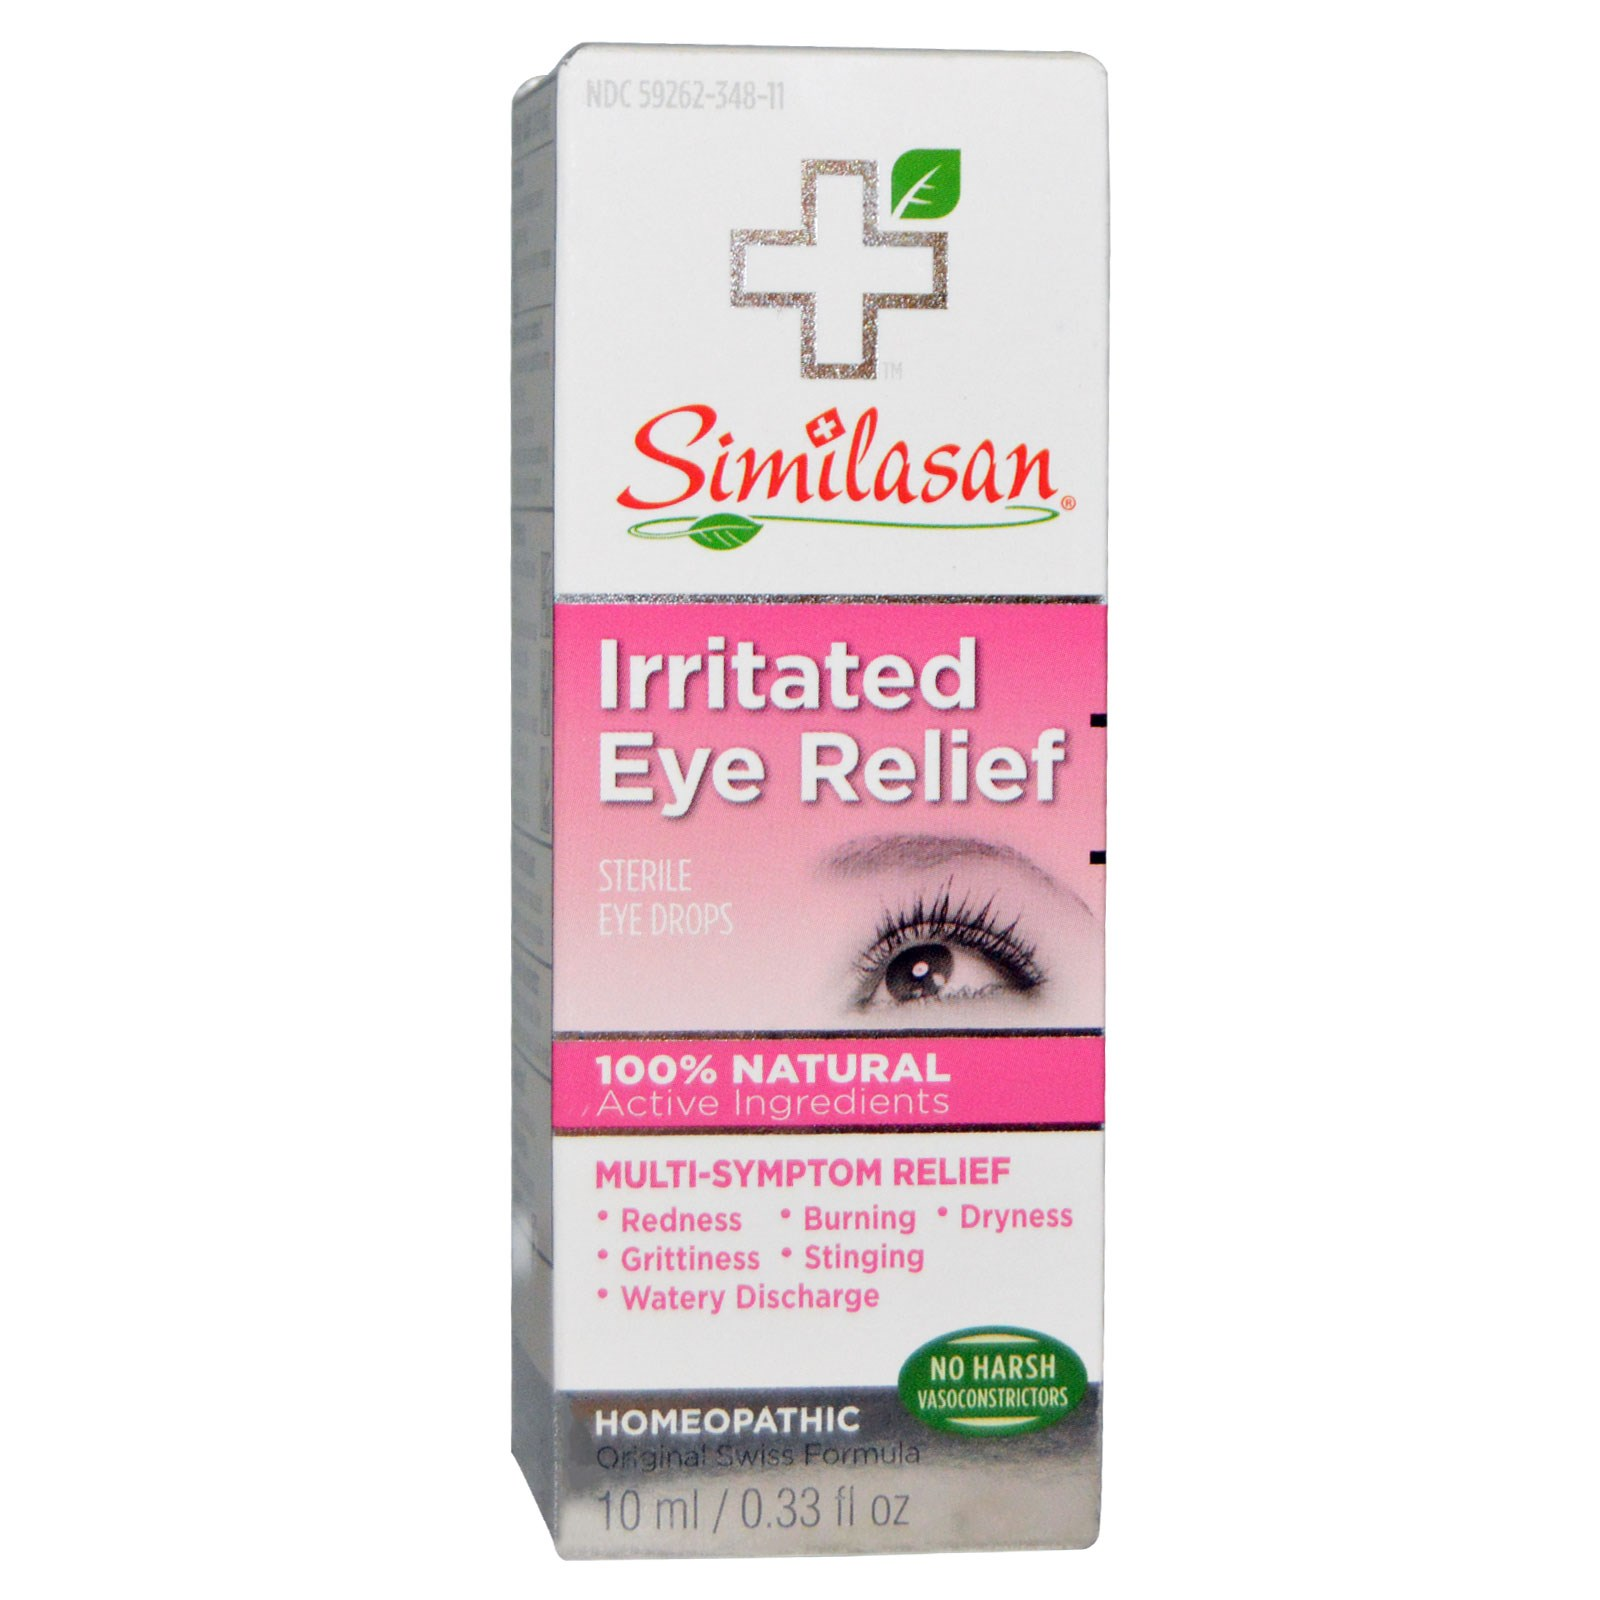 But if the eye drops expired for a long tom or not stored properly (even if the eye drop not expire), it can risk your eyes to get infection. So, don't use expired eye drops. It is unwise to risk your eye health.